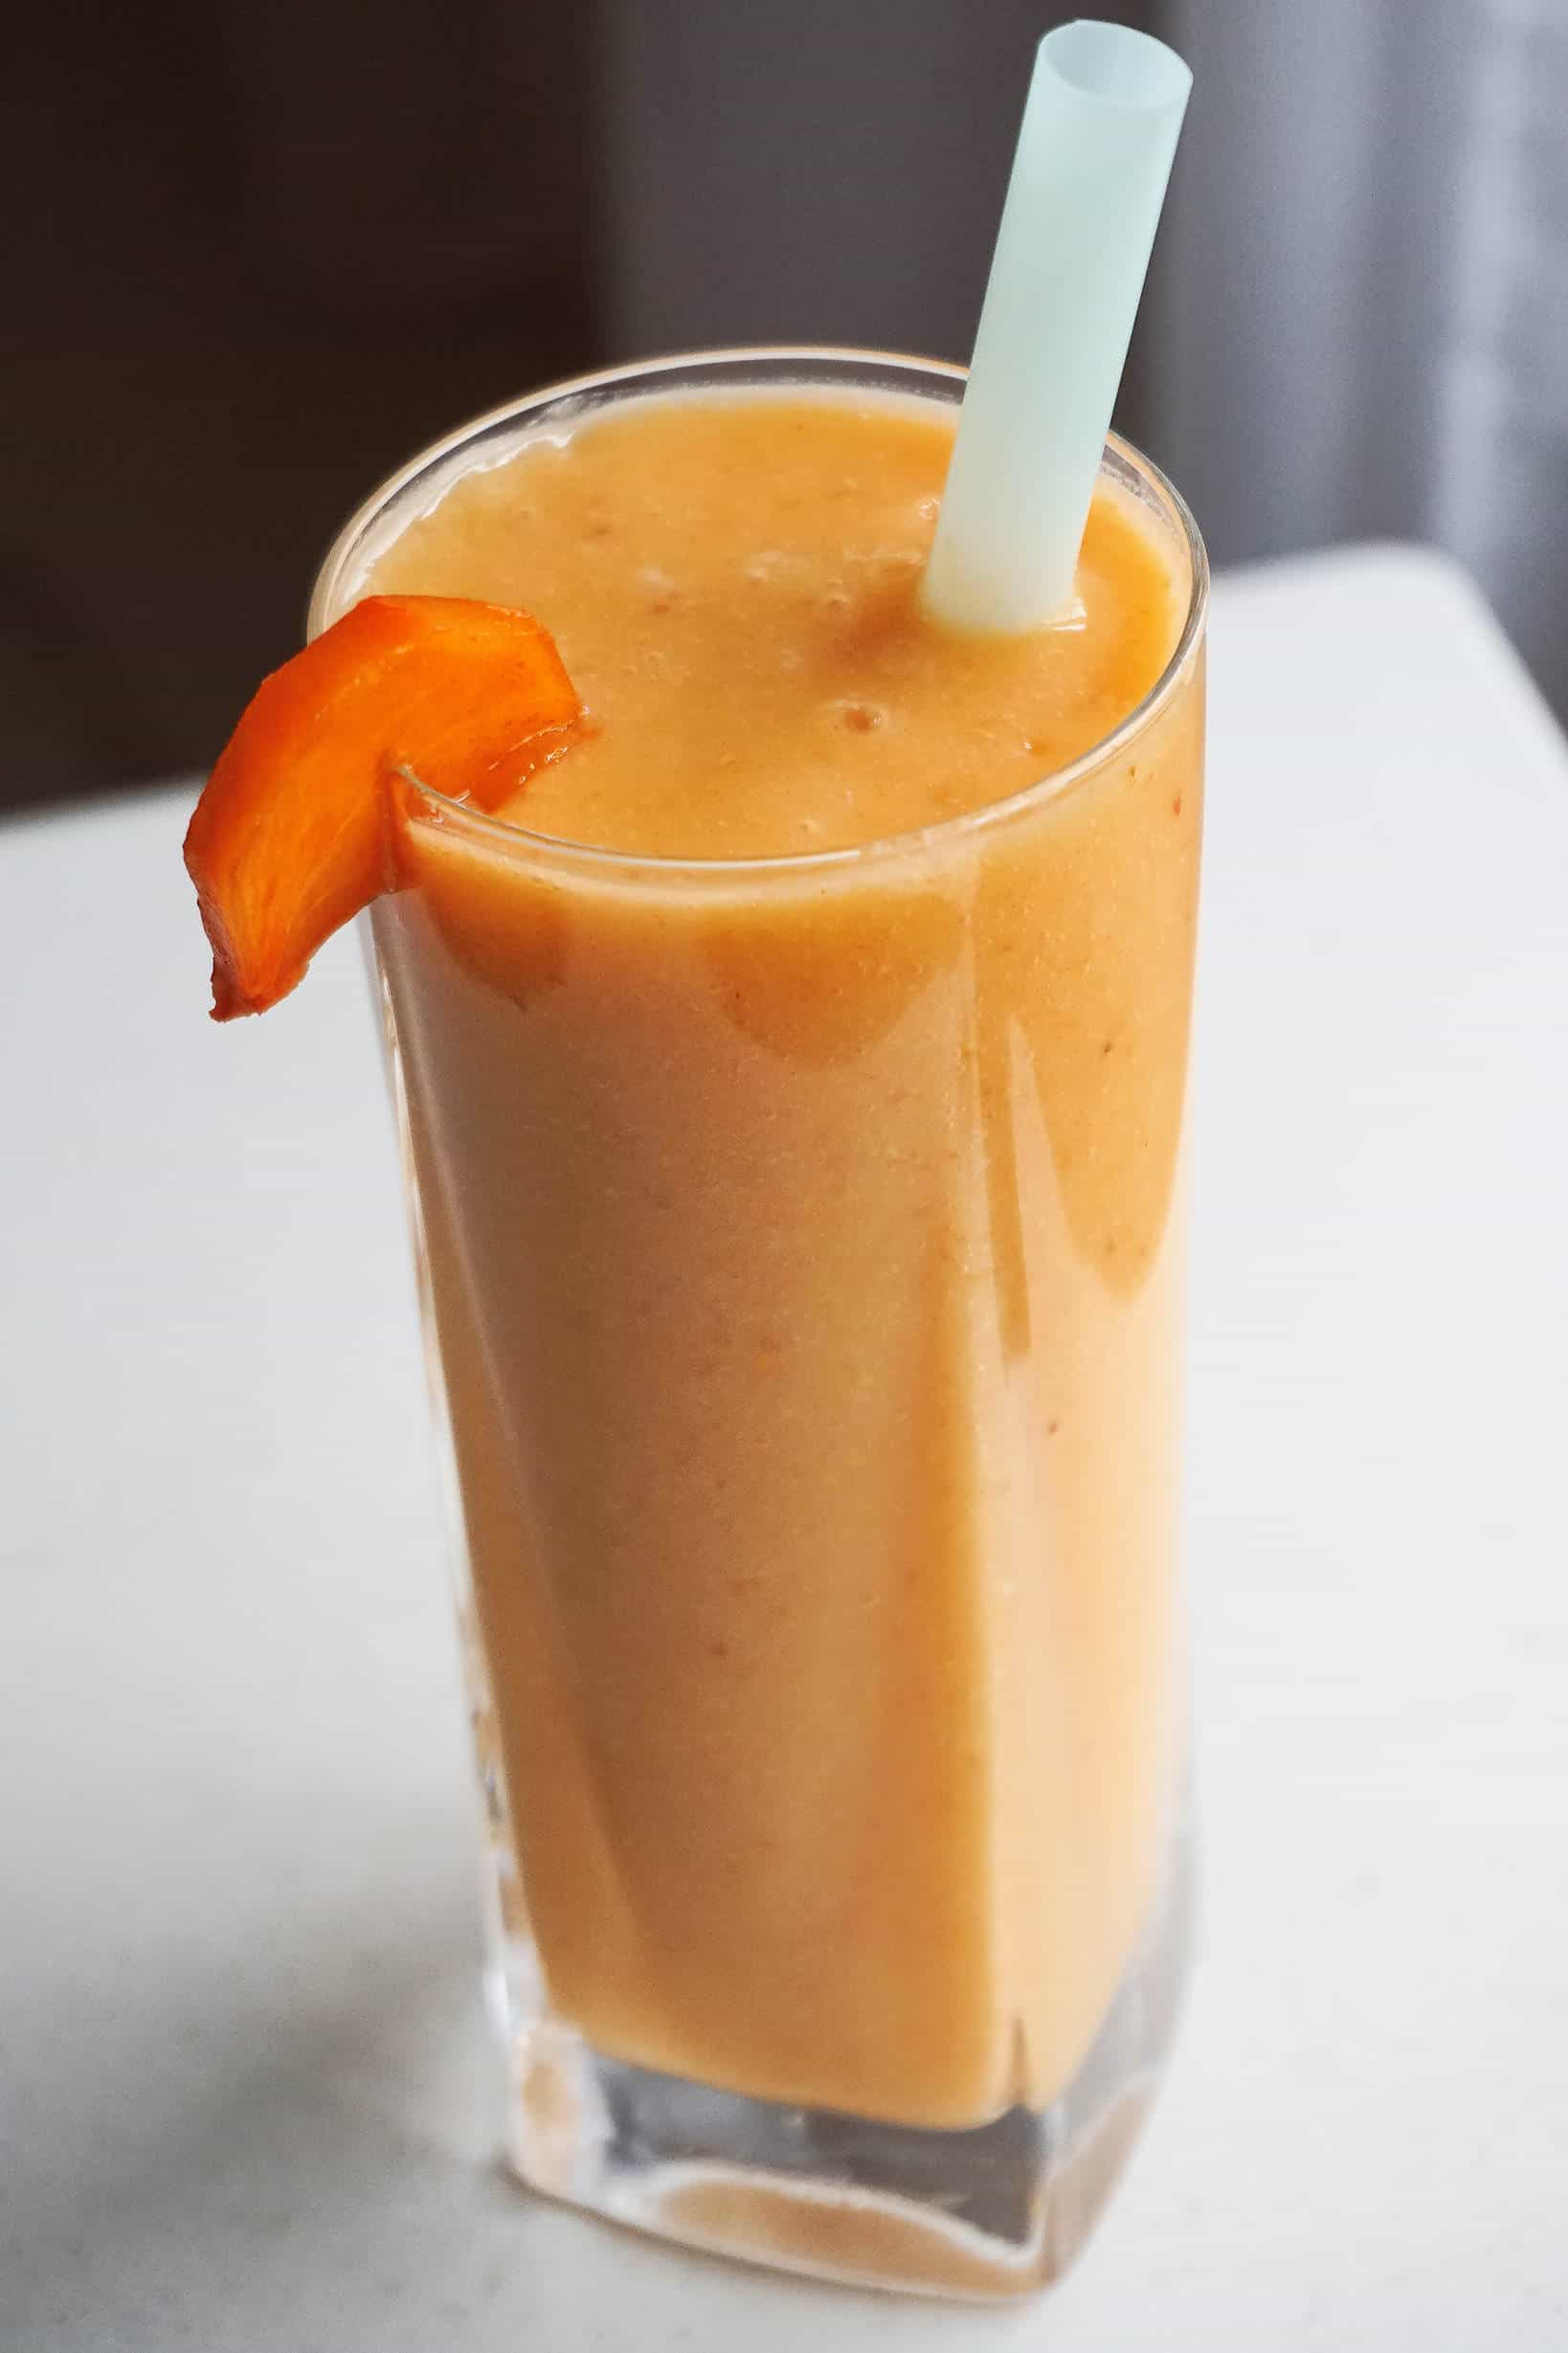 Pineapple, Persimmon & Rhubarb Smoothie - a healthy meal replacement smoothie recipe great for breakfast or snack, full of fiber and vitamins.